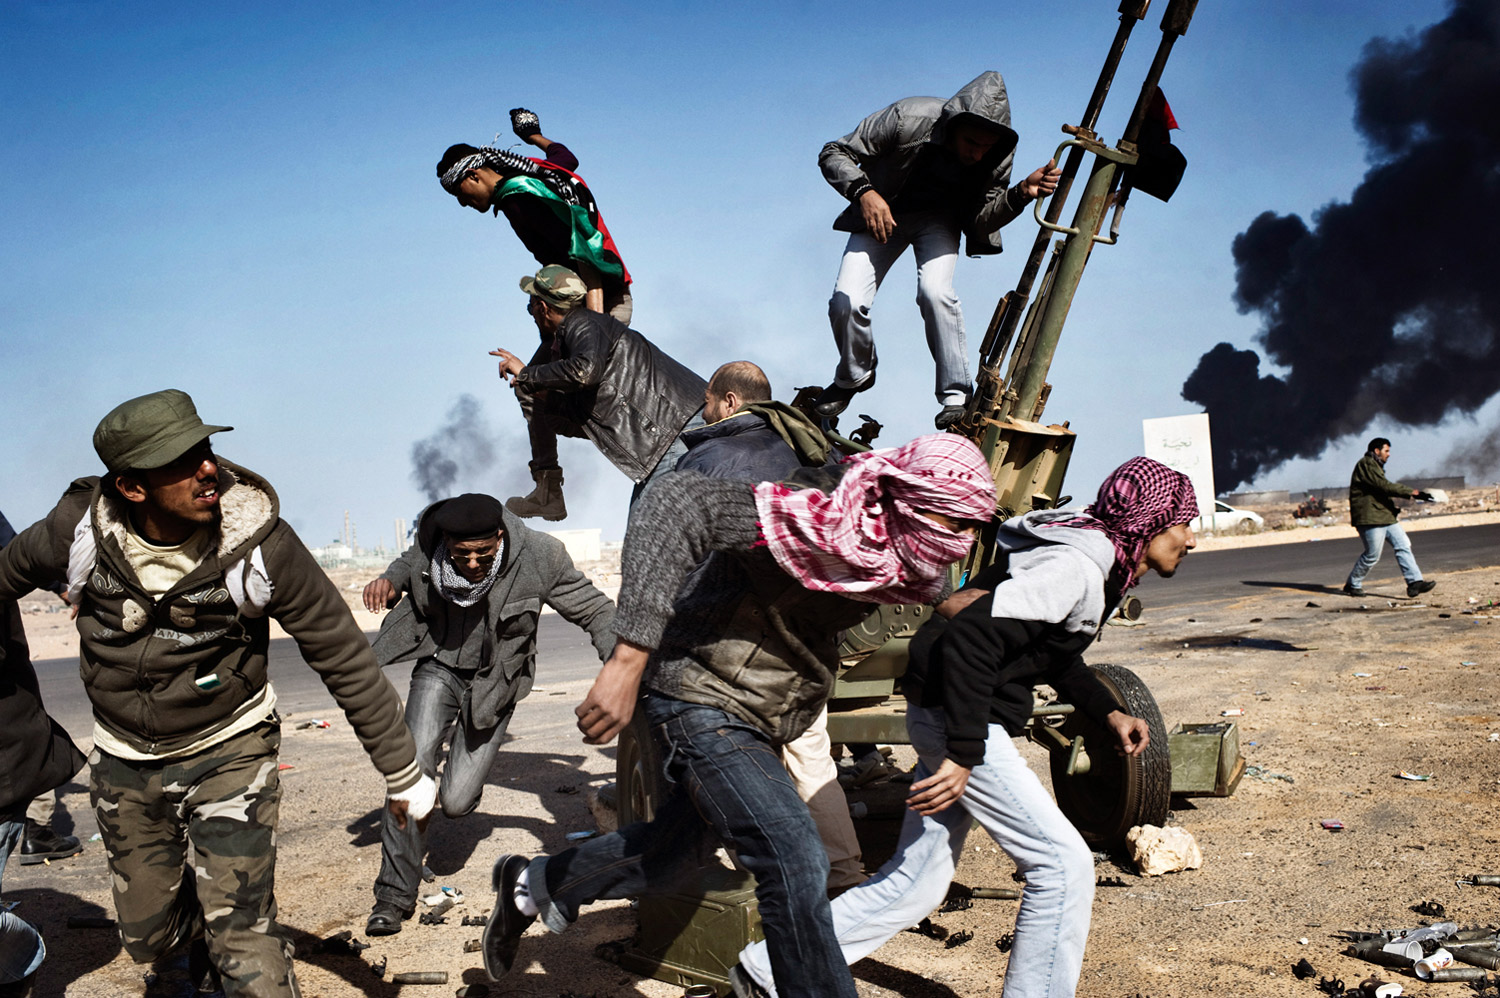 First Prize Spot News SinglesMarch 11. Rebels in Ras Lanuf, Libya. For weeks, rebels held out against Libyan leader Muammar Gaddafi with the hope that the world would come to their aid. Defiance faded as the dictator's planes and tanks began to retake what had been dubbed Free Libya.